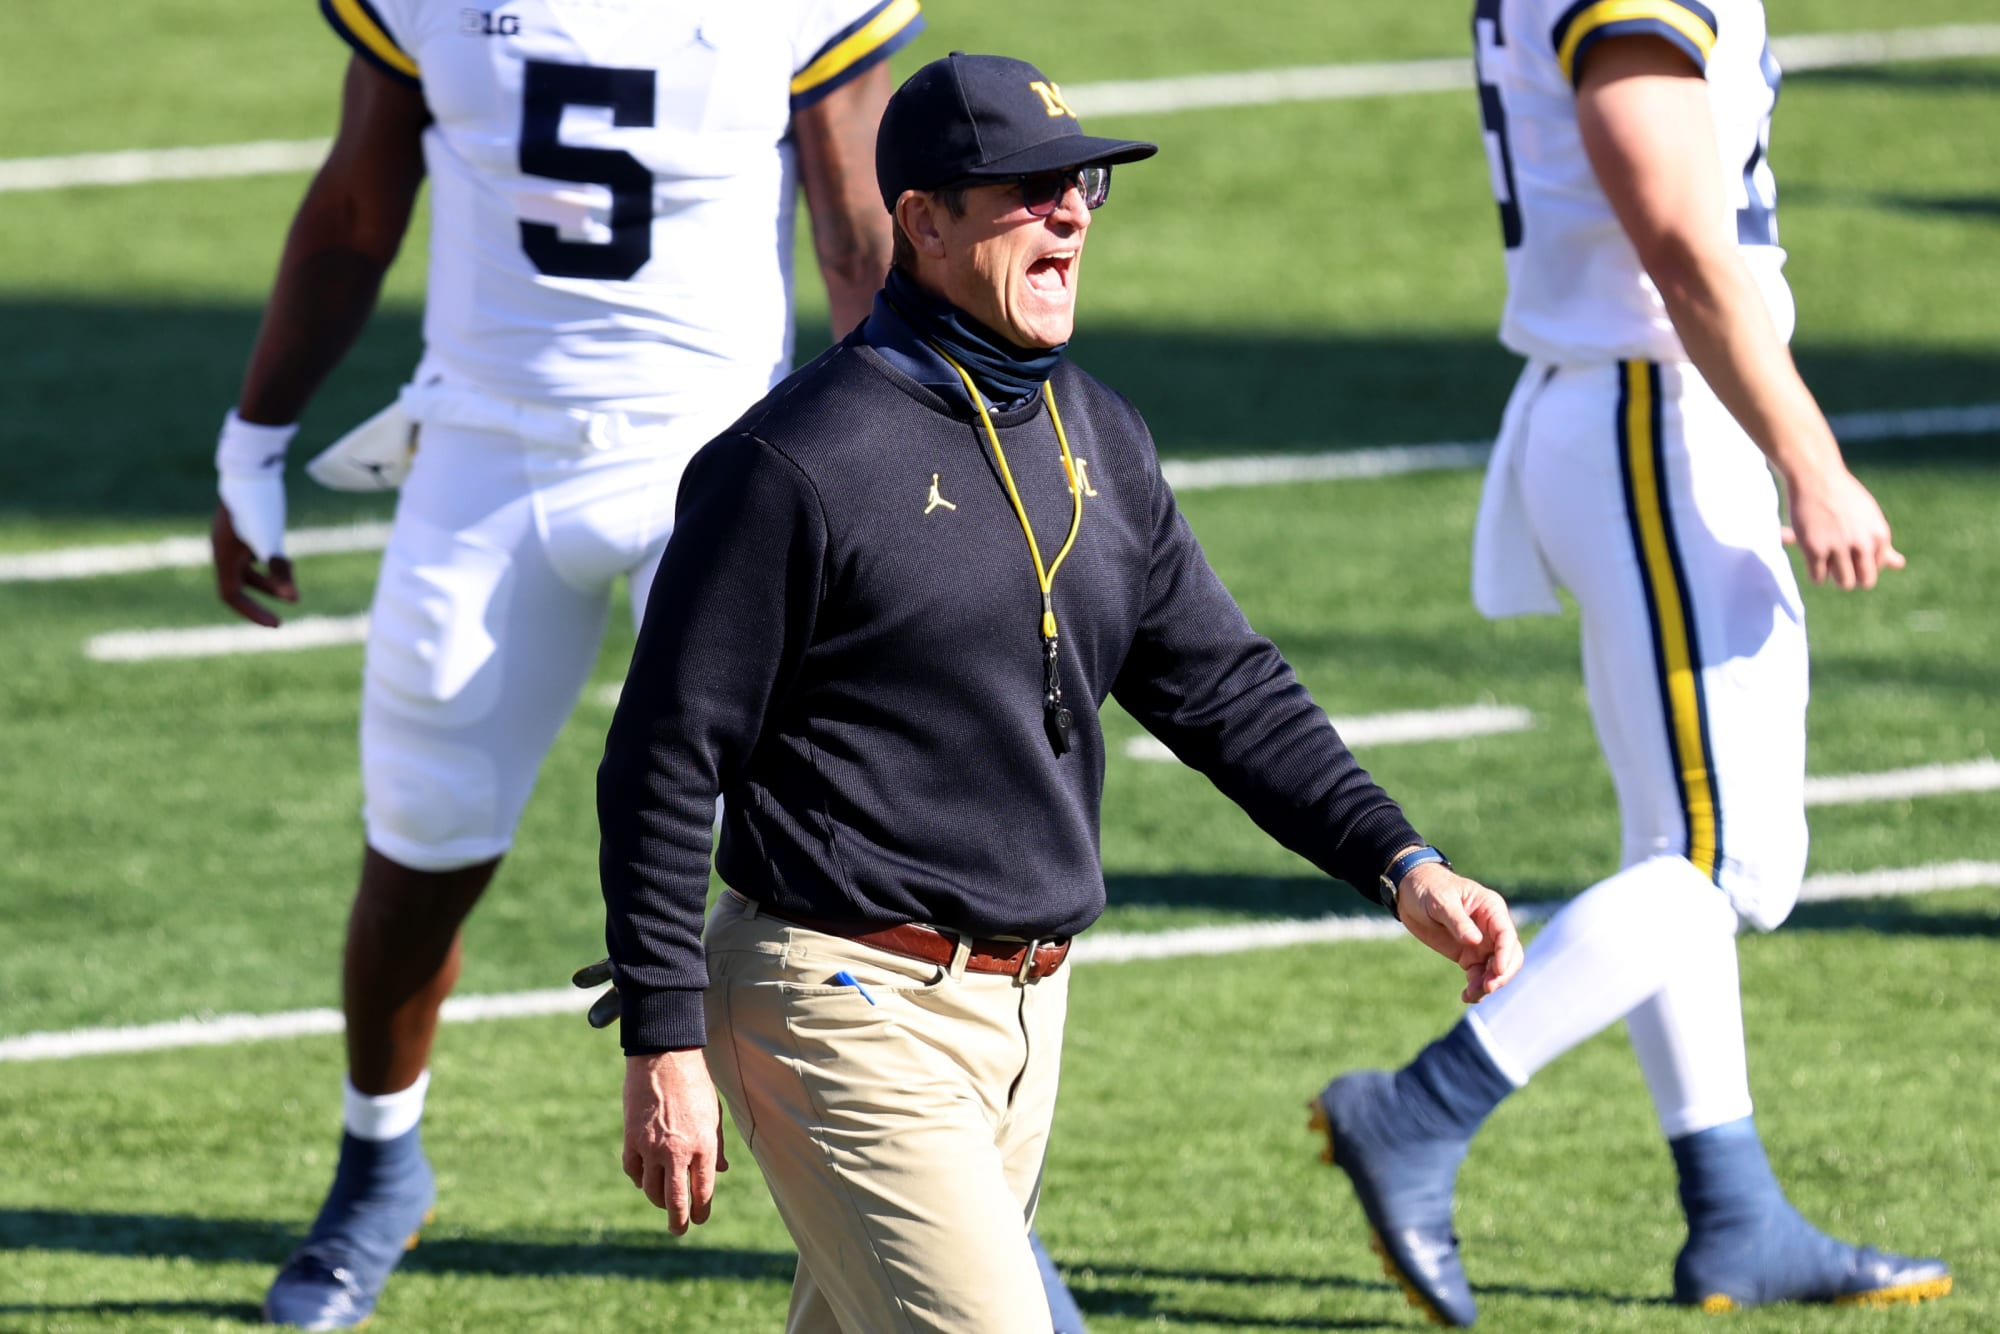 Michigan football plucks Cowboys coach as new co-DC thumbnail